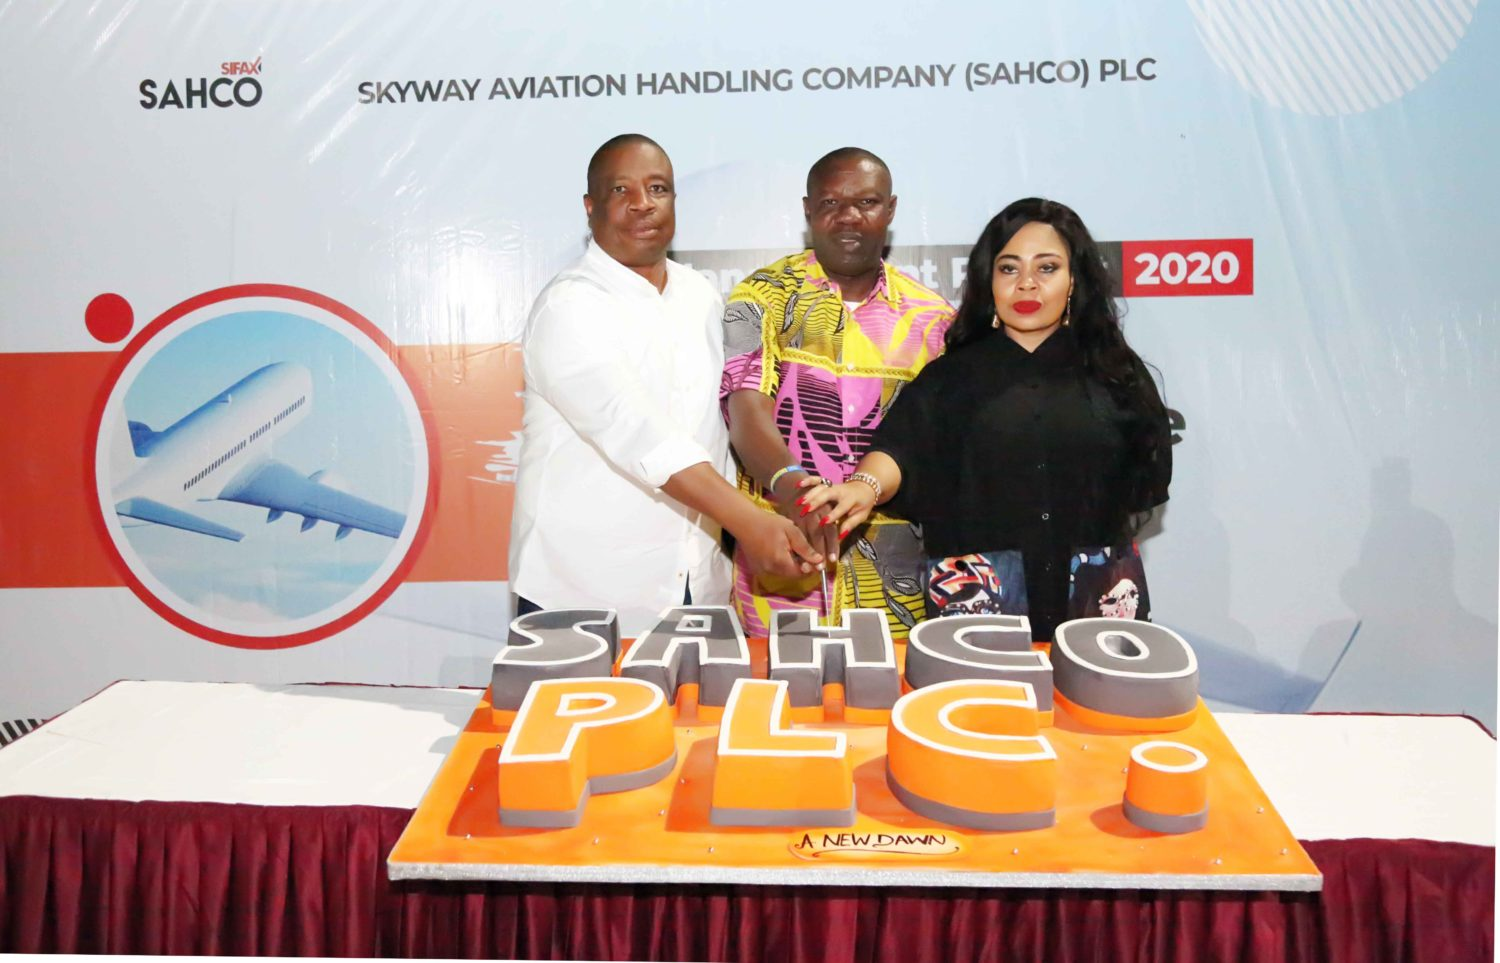 L-R:Executive Director, Sales and Marketing, Skyway Aviation Handling Company PLC (SAHCO), Olaniyi Adigun ; Managing Director/CEO, SAHCO, Basil Agboarumi; Executive Director, Cargo Services and Operations, SAHCO, Boma Ukwunna cutting the cake at the Management Retreat.